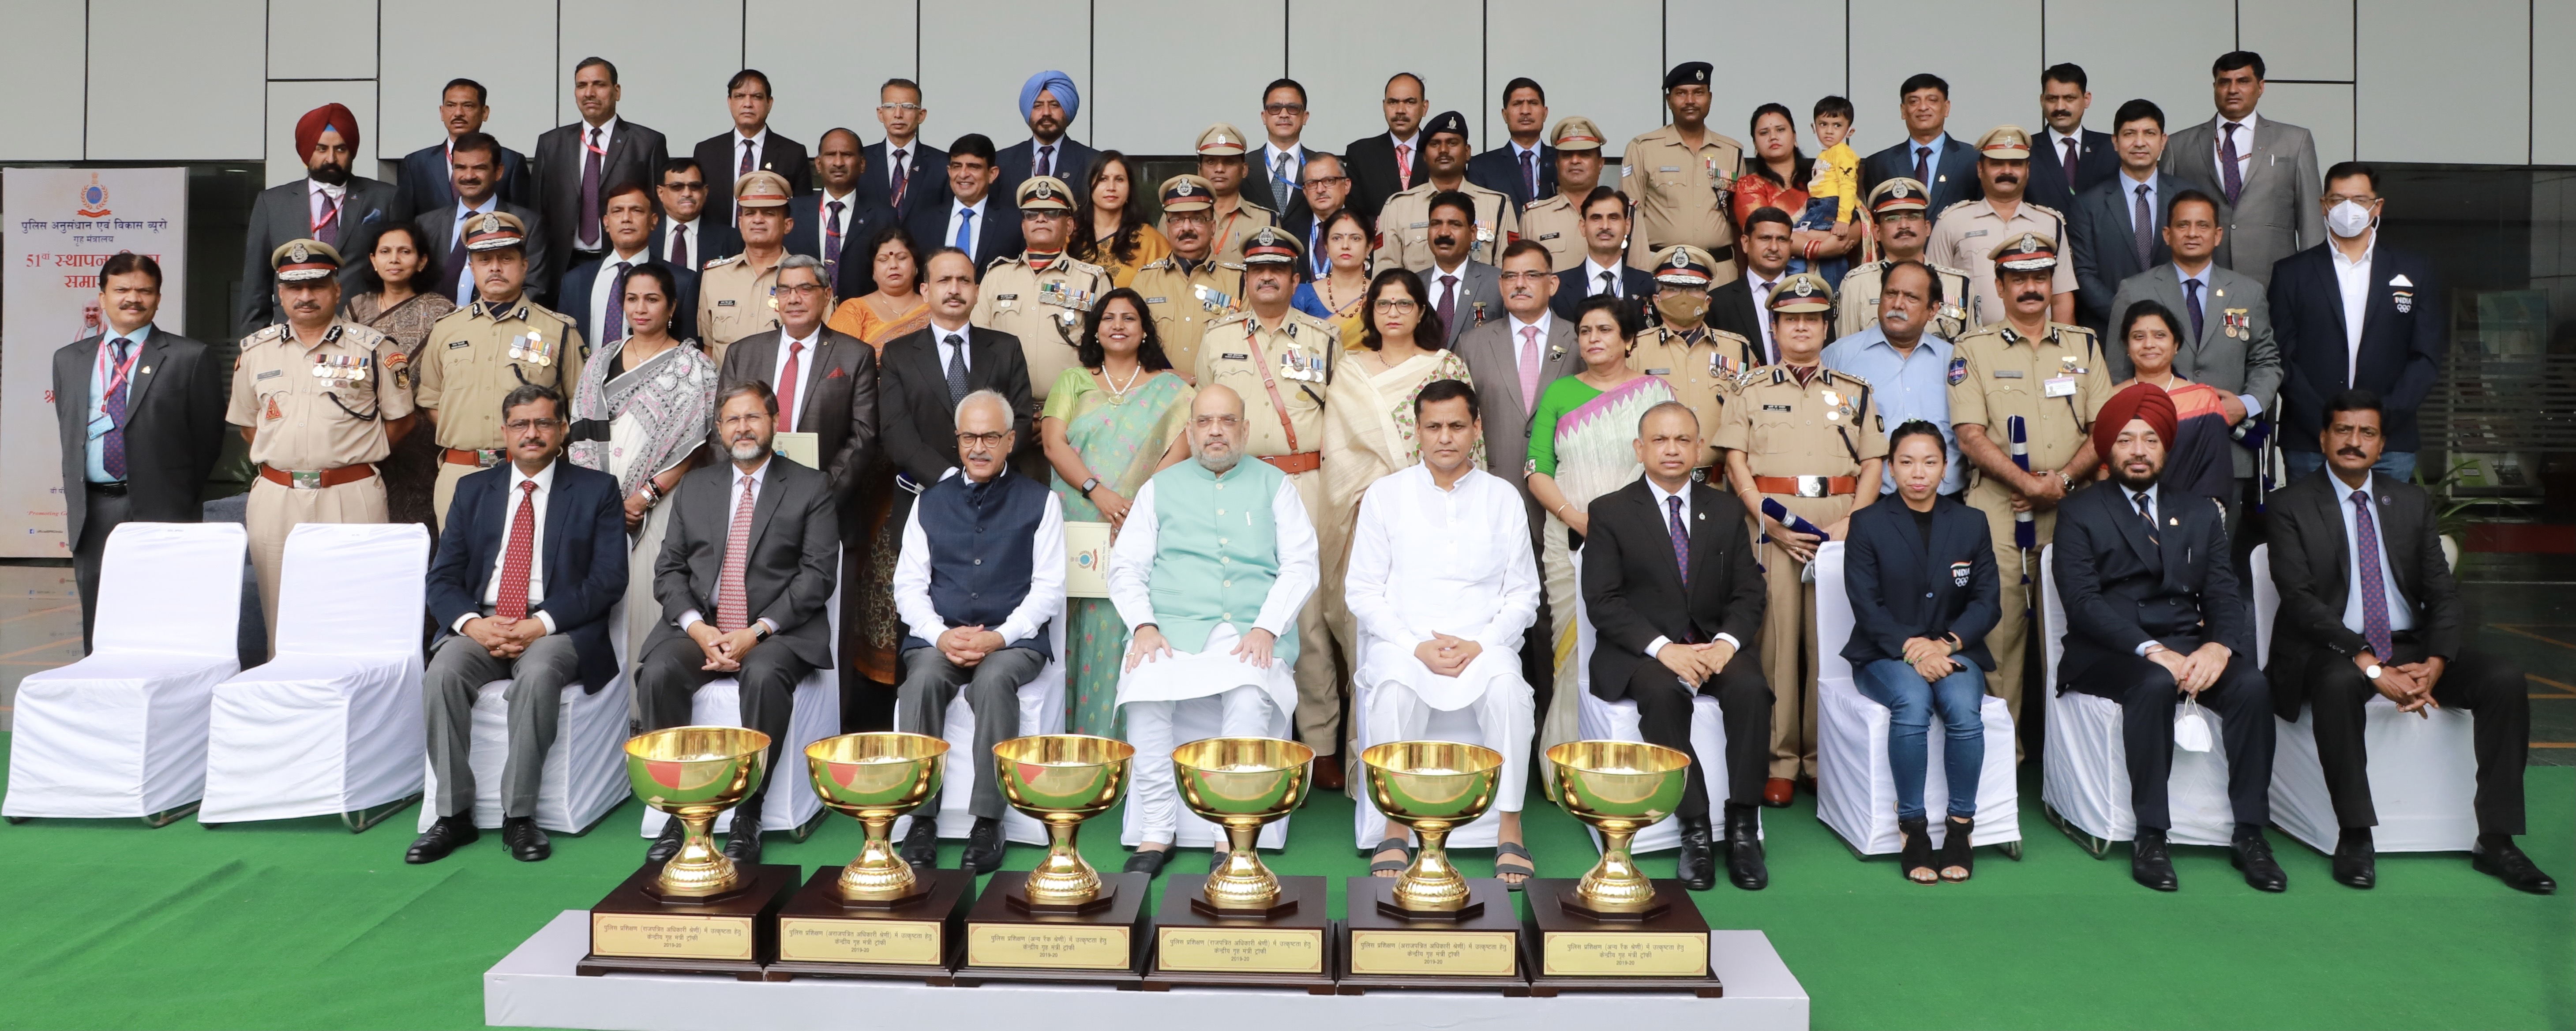 The Union Minister for Home Affairs and Cooperation, Shri Amit Shah attended a program organized on the occasion of 51st Foundation Day of Bureau of Police Research and Development (BPR&D) in New Delhi today as the Chief Guest